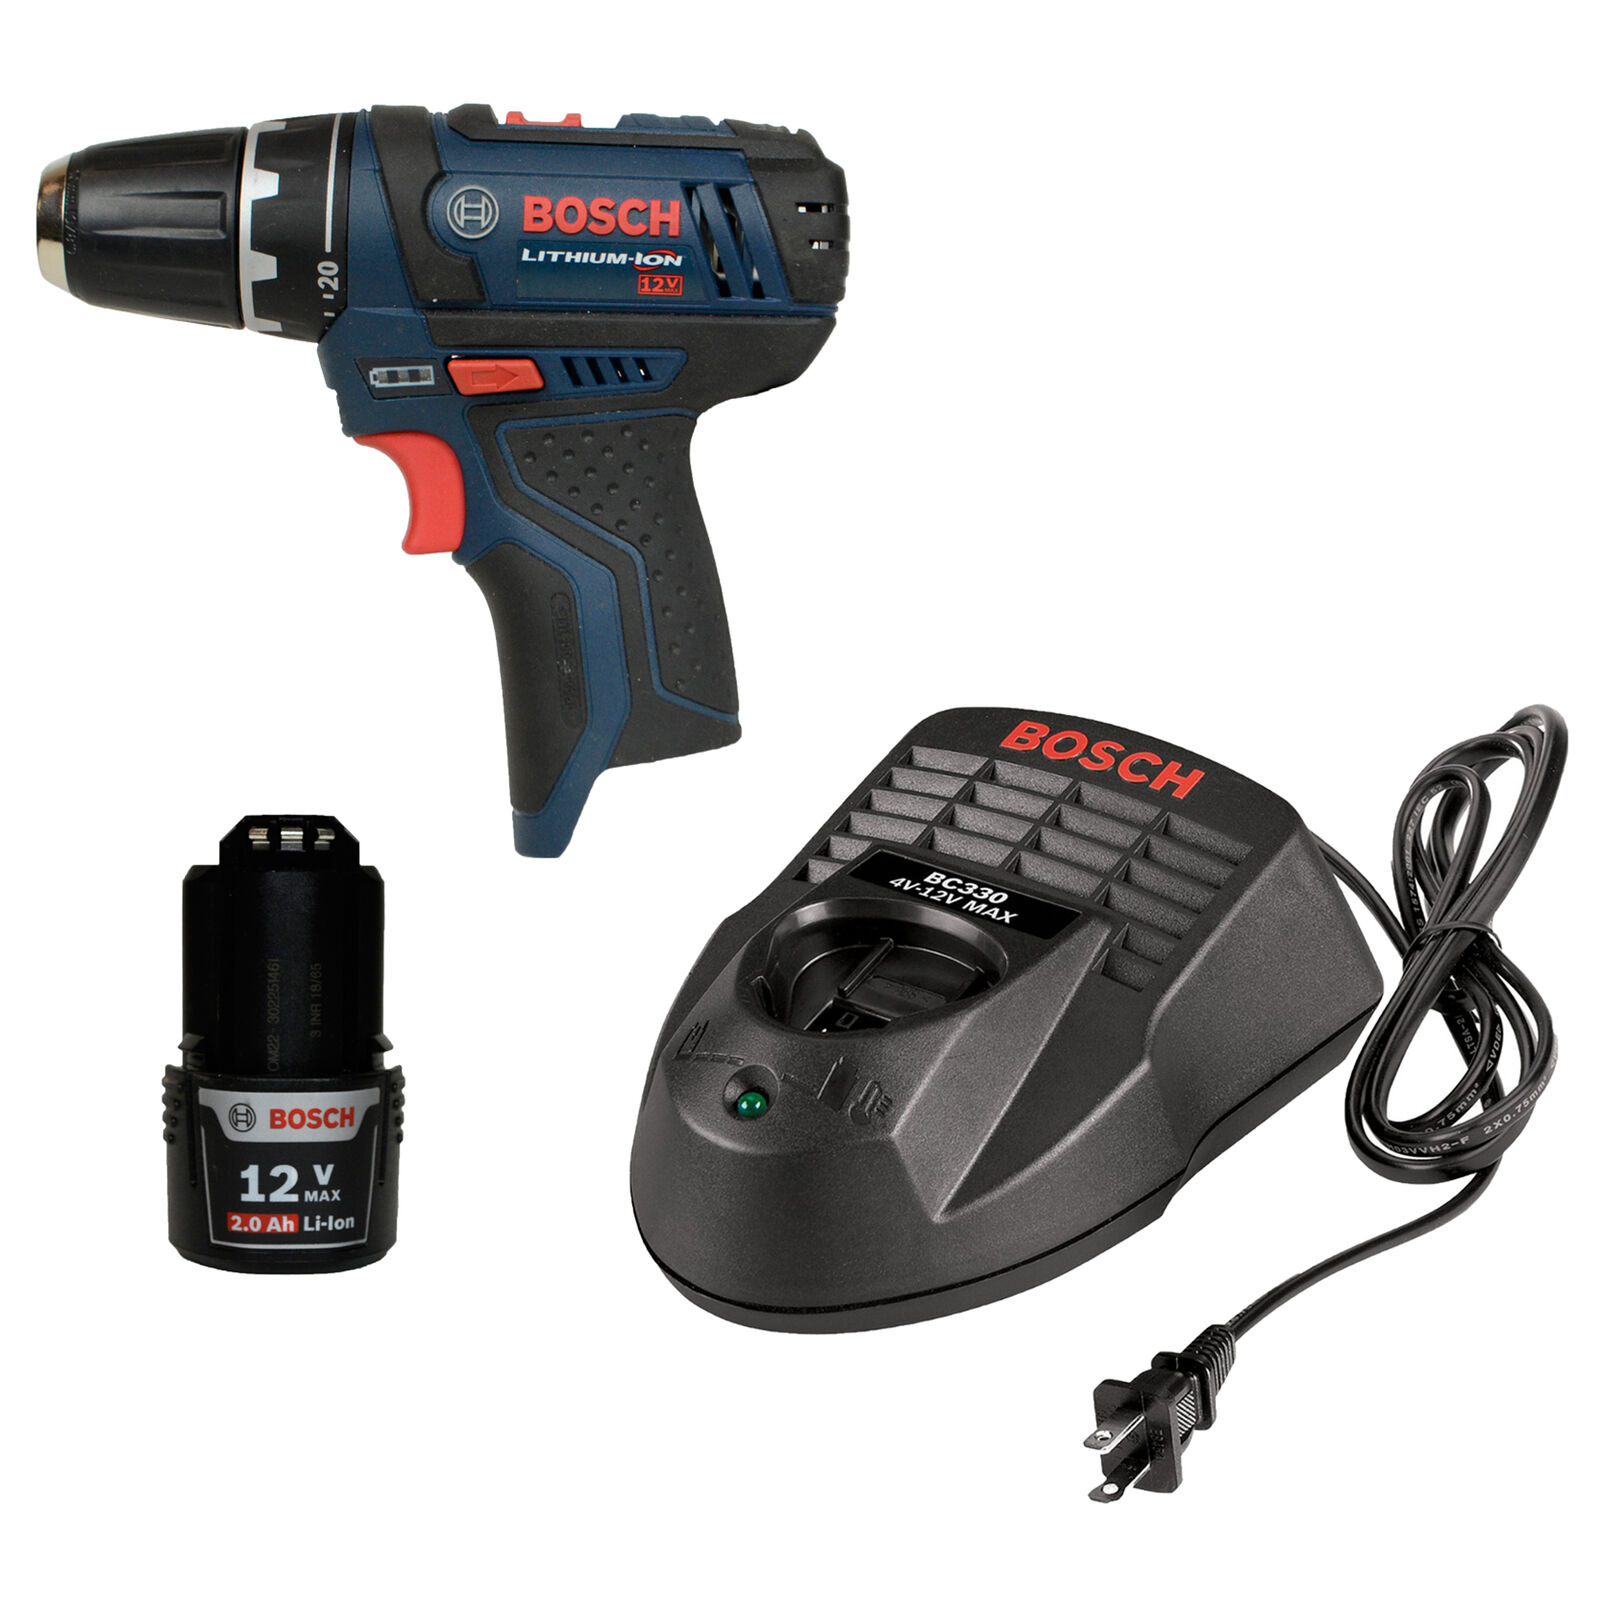 Bosch PS31 10.8-12V Li-Ion Drill Driver with BAT414 Battery and BC330 Charger